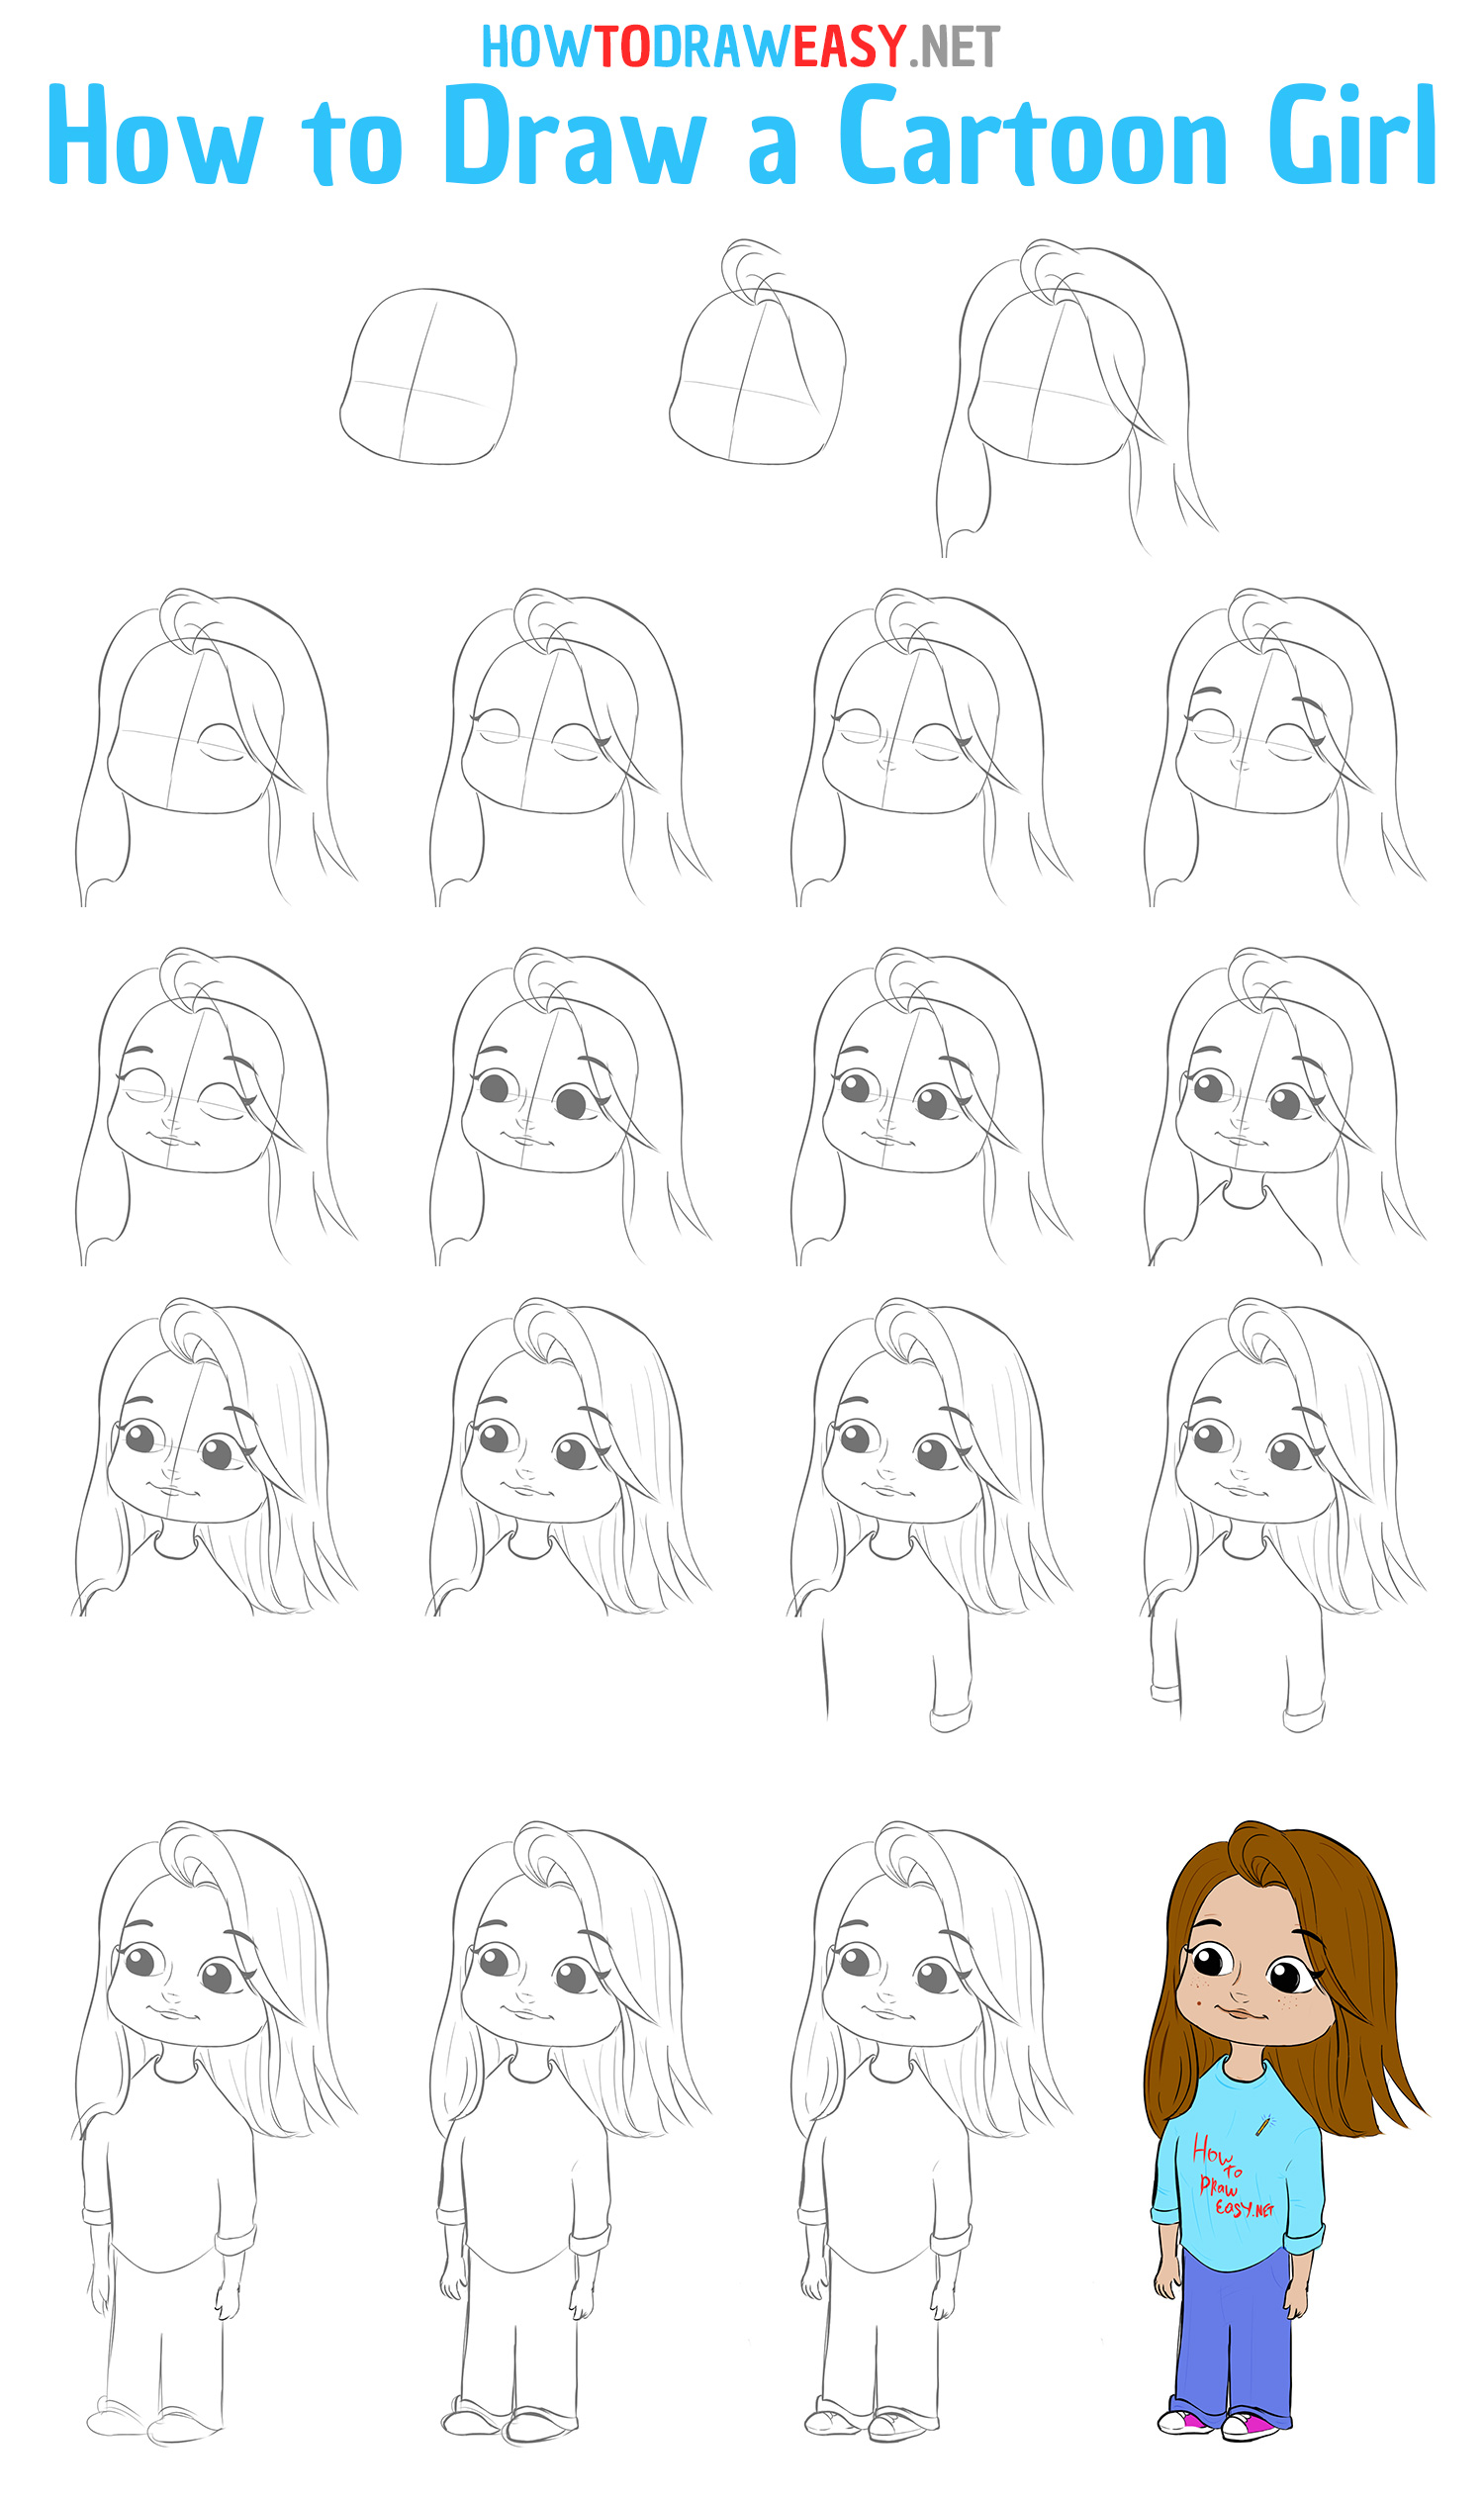 How to Draw a Cartoon Girl Step by Step